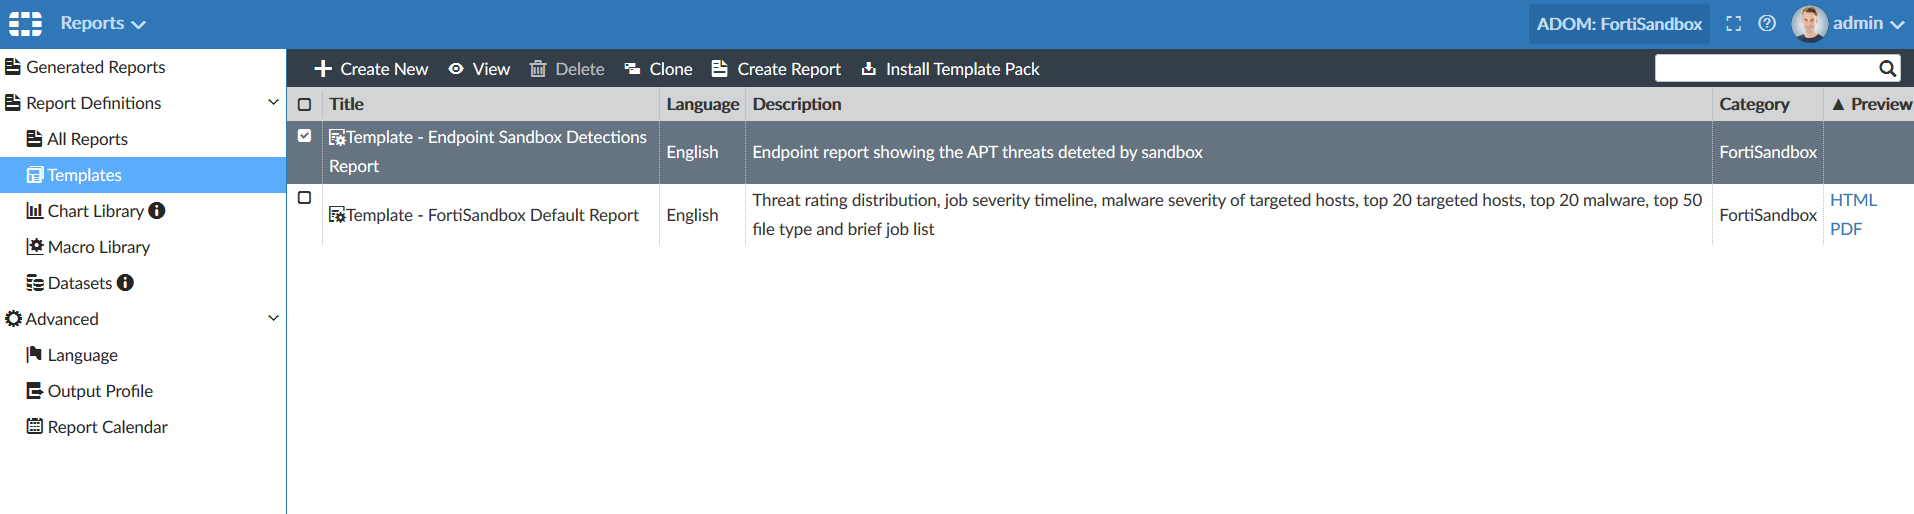 Screenshot displaying the selection of Endpoint Sandbox Detections Report